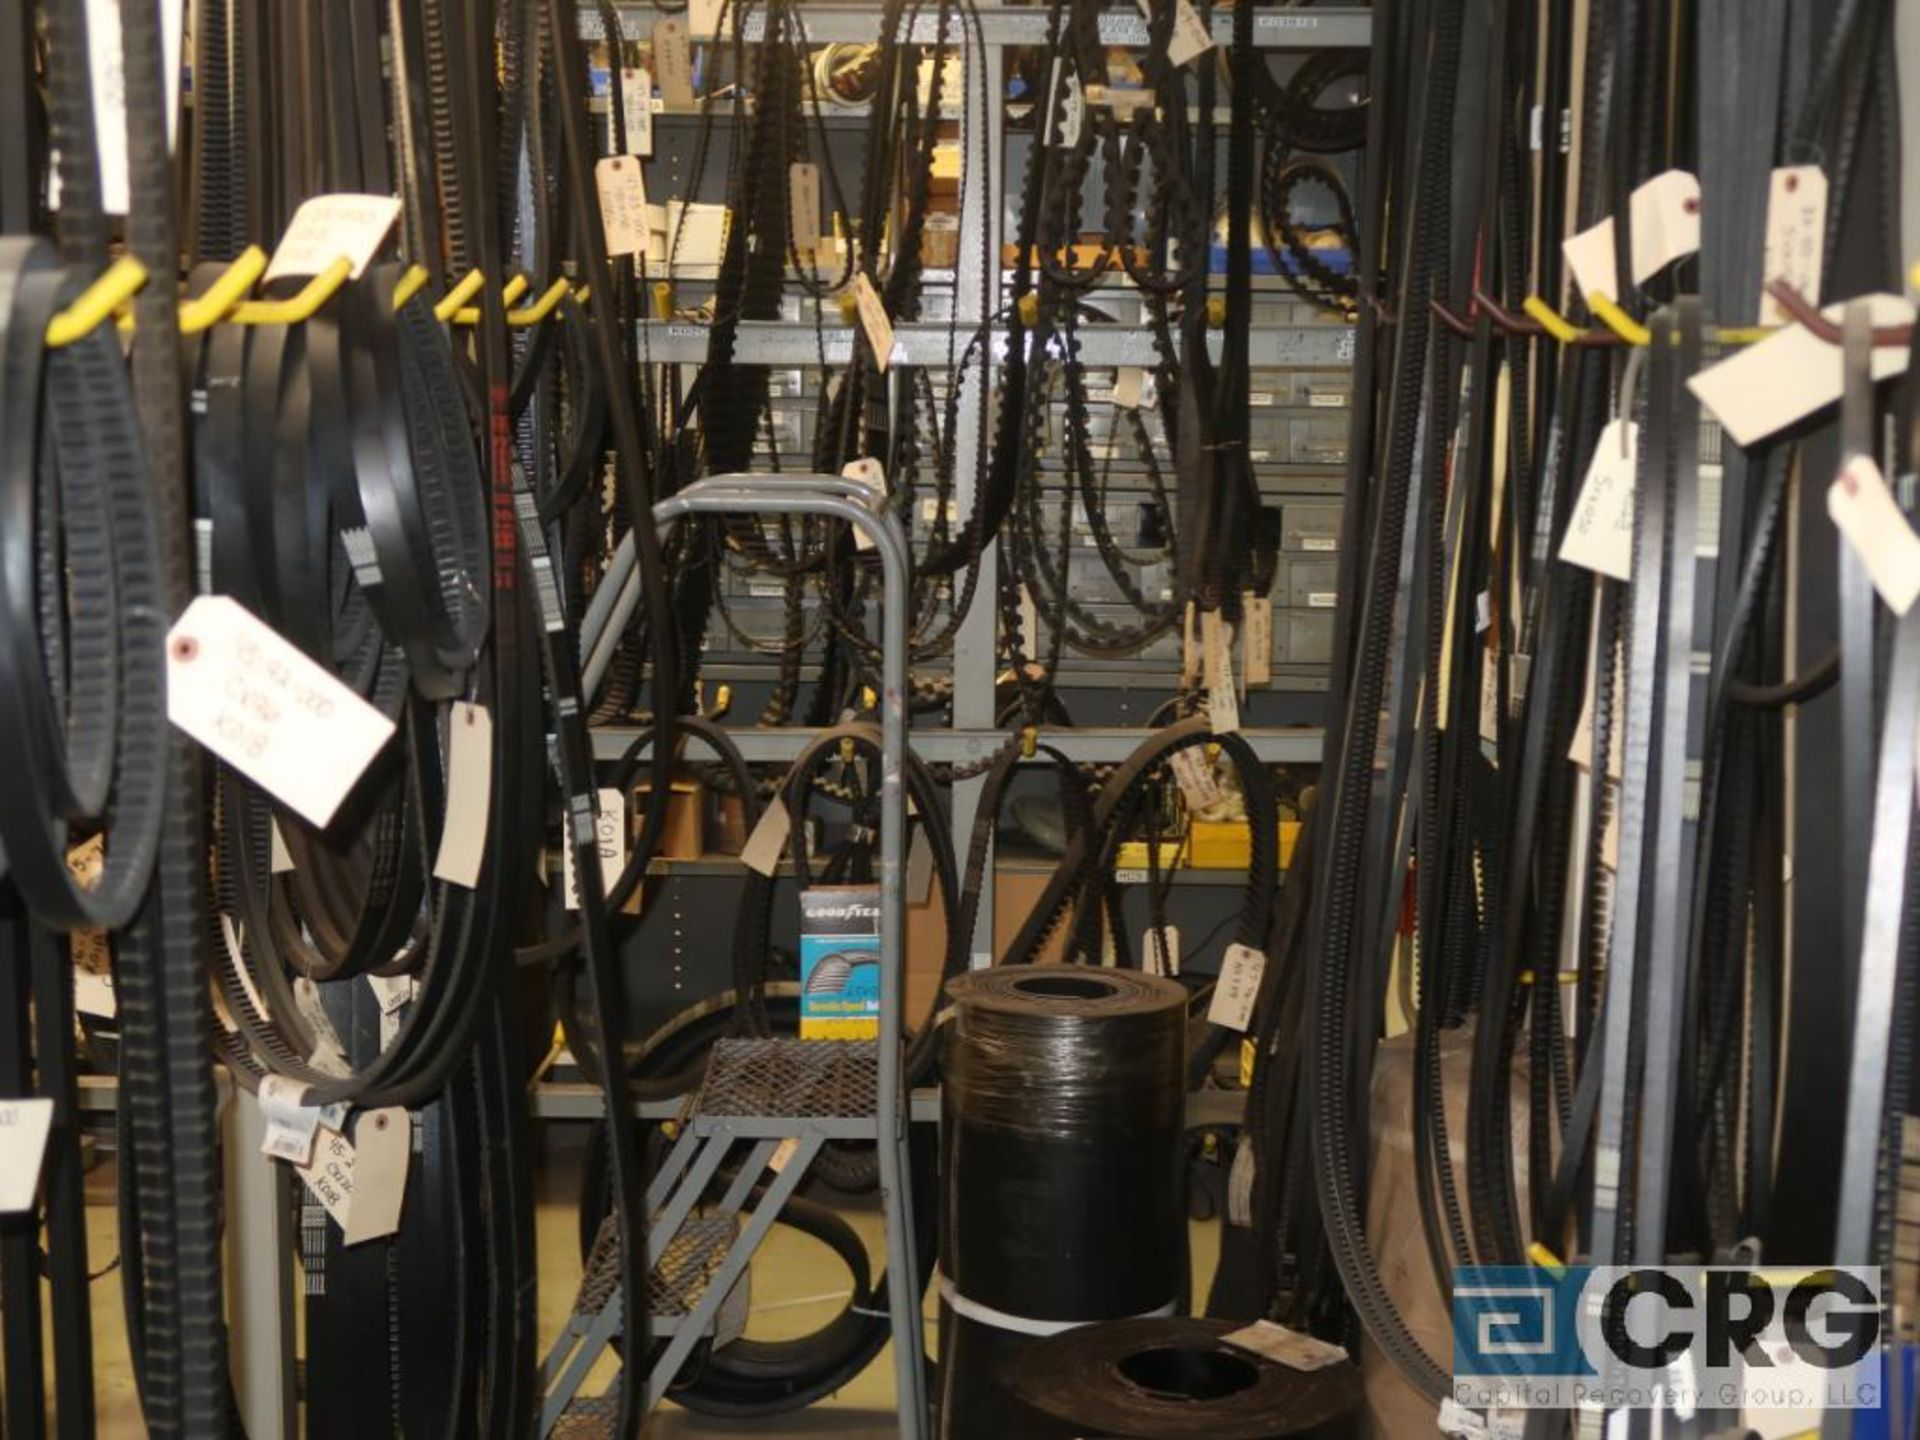 Lot of assorted V-belts hanging, and (6) metal shelving sections-CONTENTS ONLY (Store Basement) - Image 4 of 10